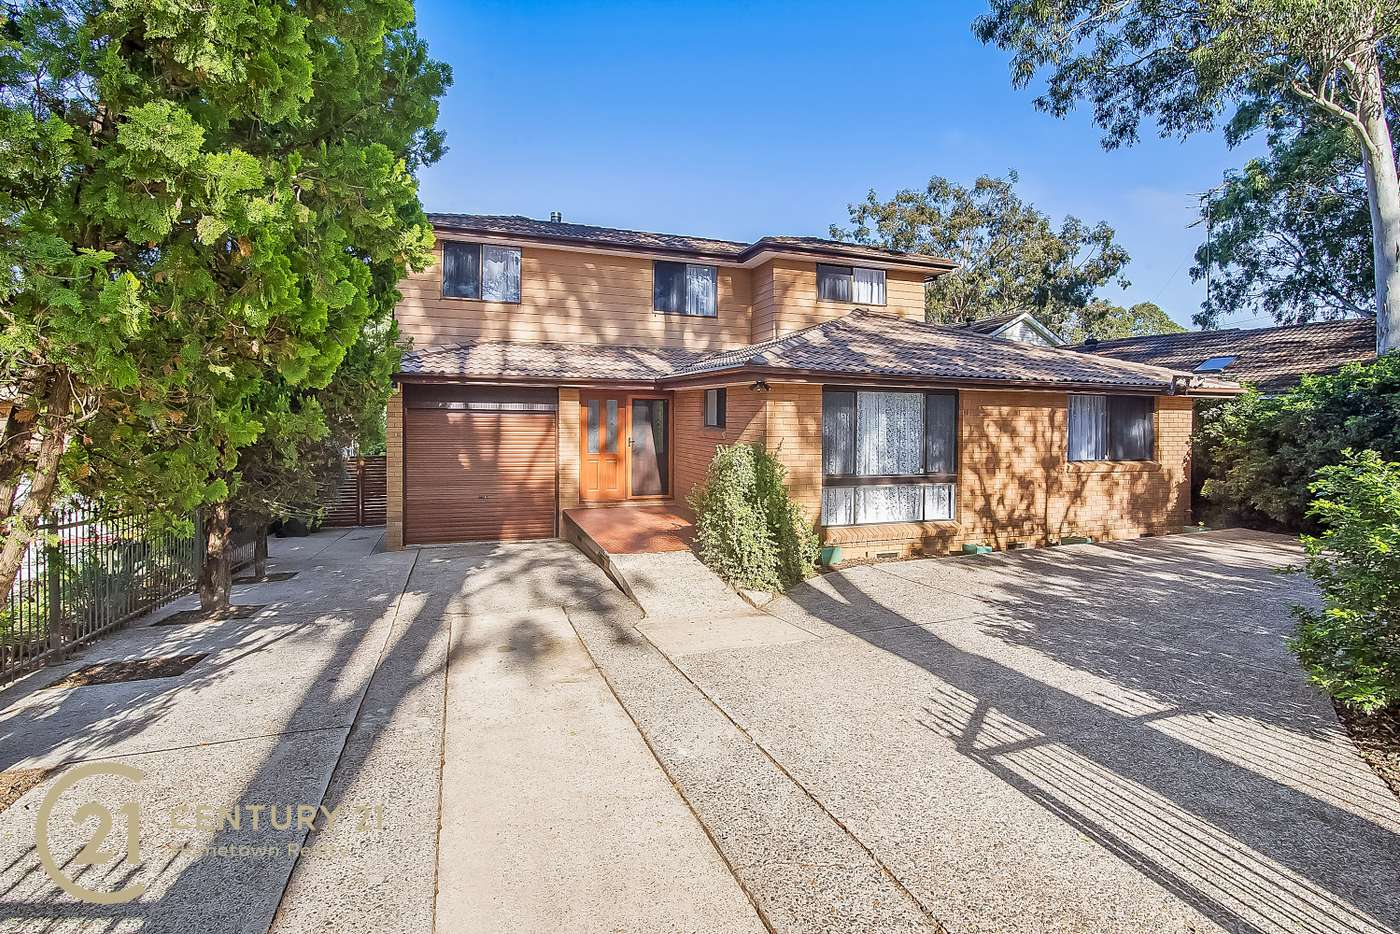 Main view of Homely house listing, 72 Bridge St, Schofields NSW 2762